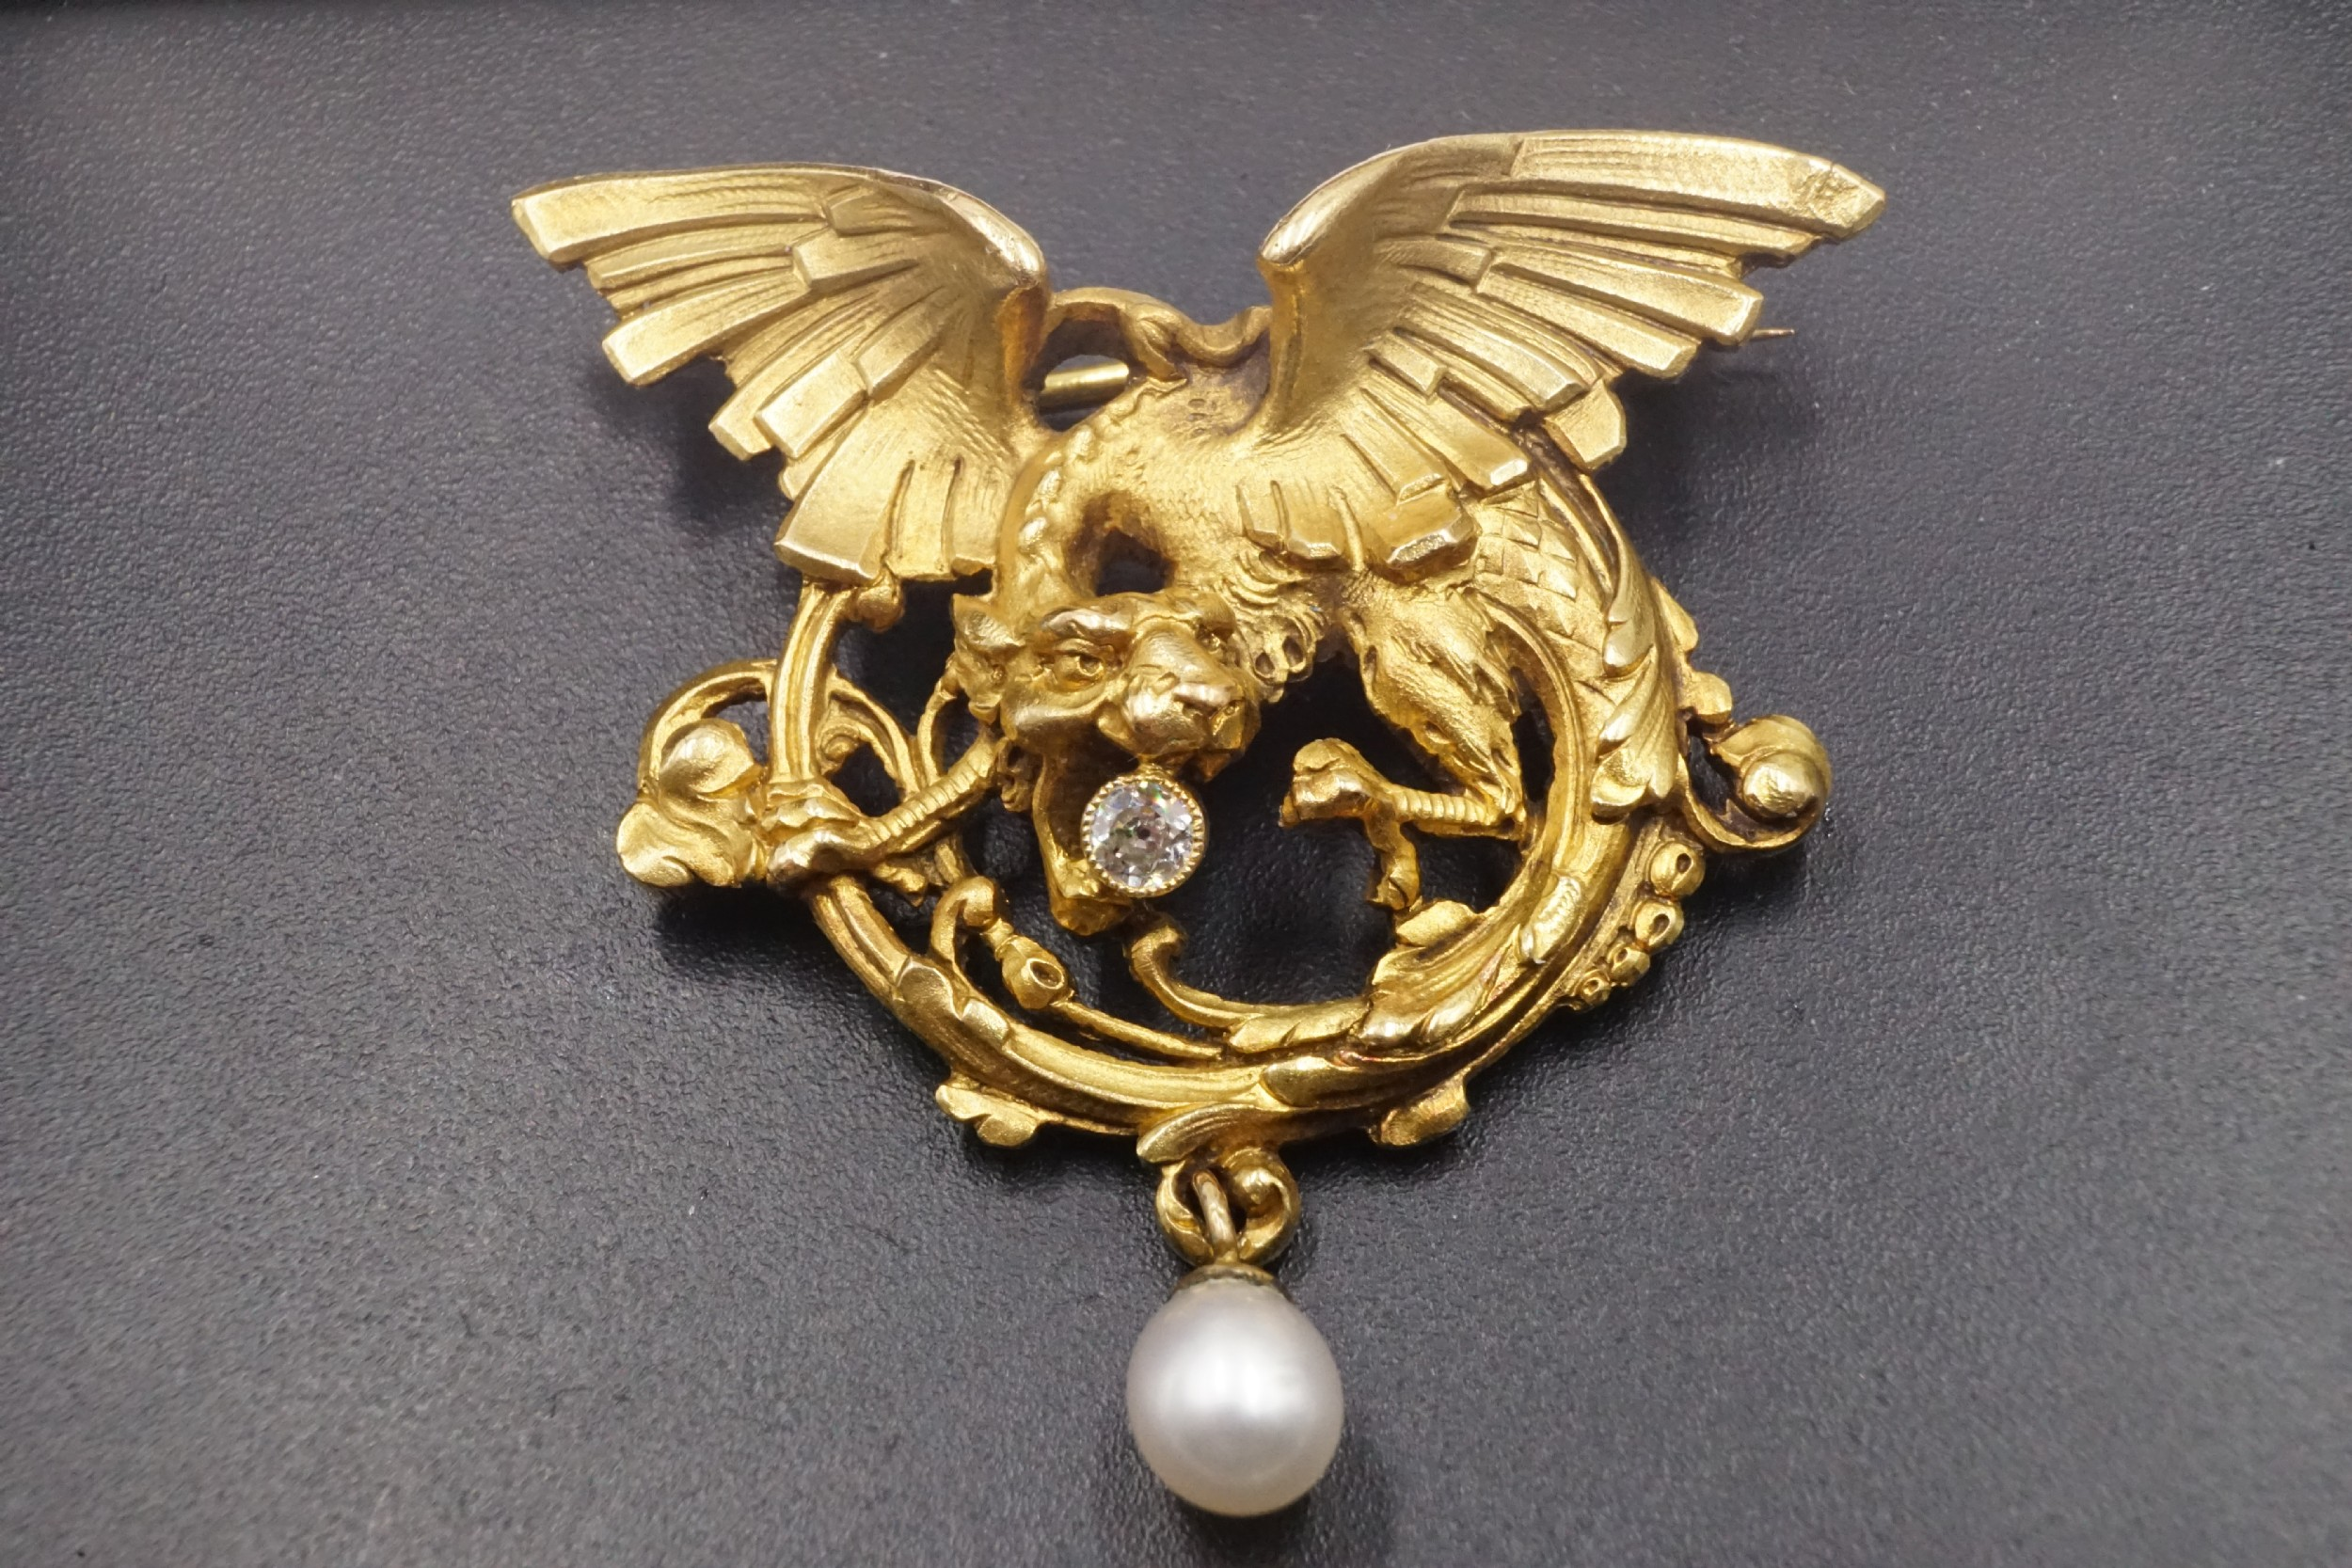 an art nouveau french diamond natural and 18k gold griffin brooch with french assay mark and maker's mark